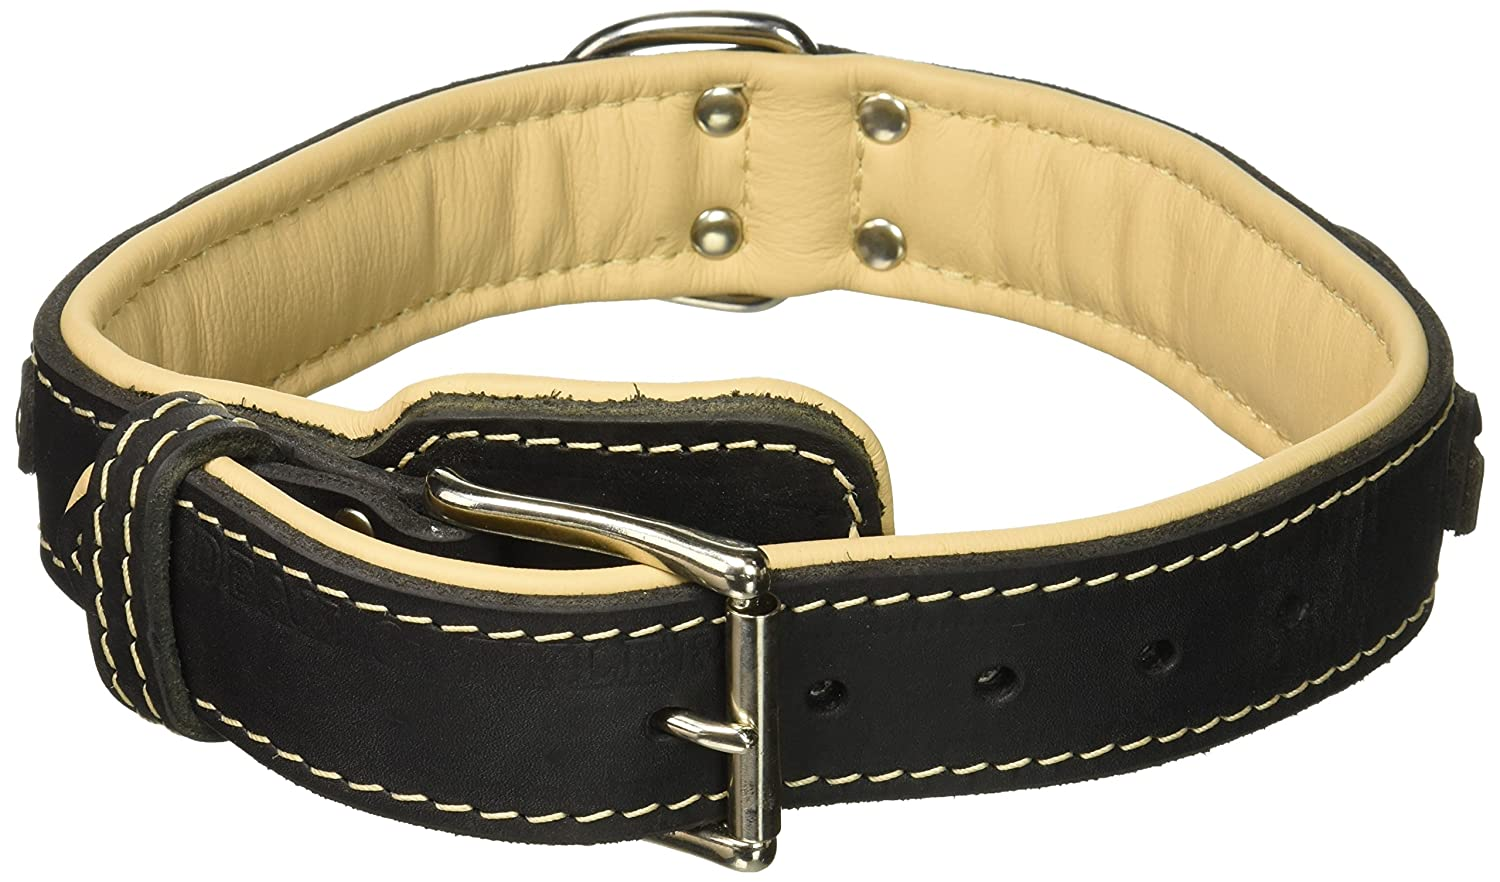 Dean & Tyler Dean's Legend Dog Collar with Brown Padding and Chrome Plated Steel Hardware, 20 by 1-1 2-Inch, Black